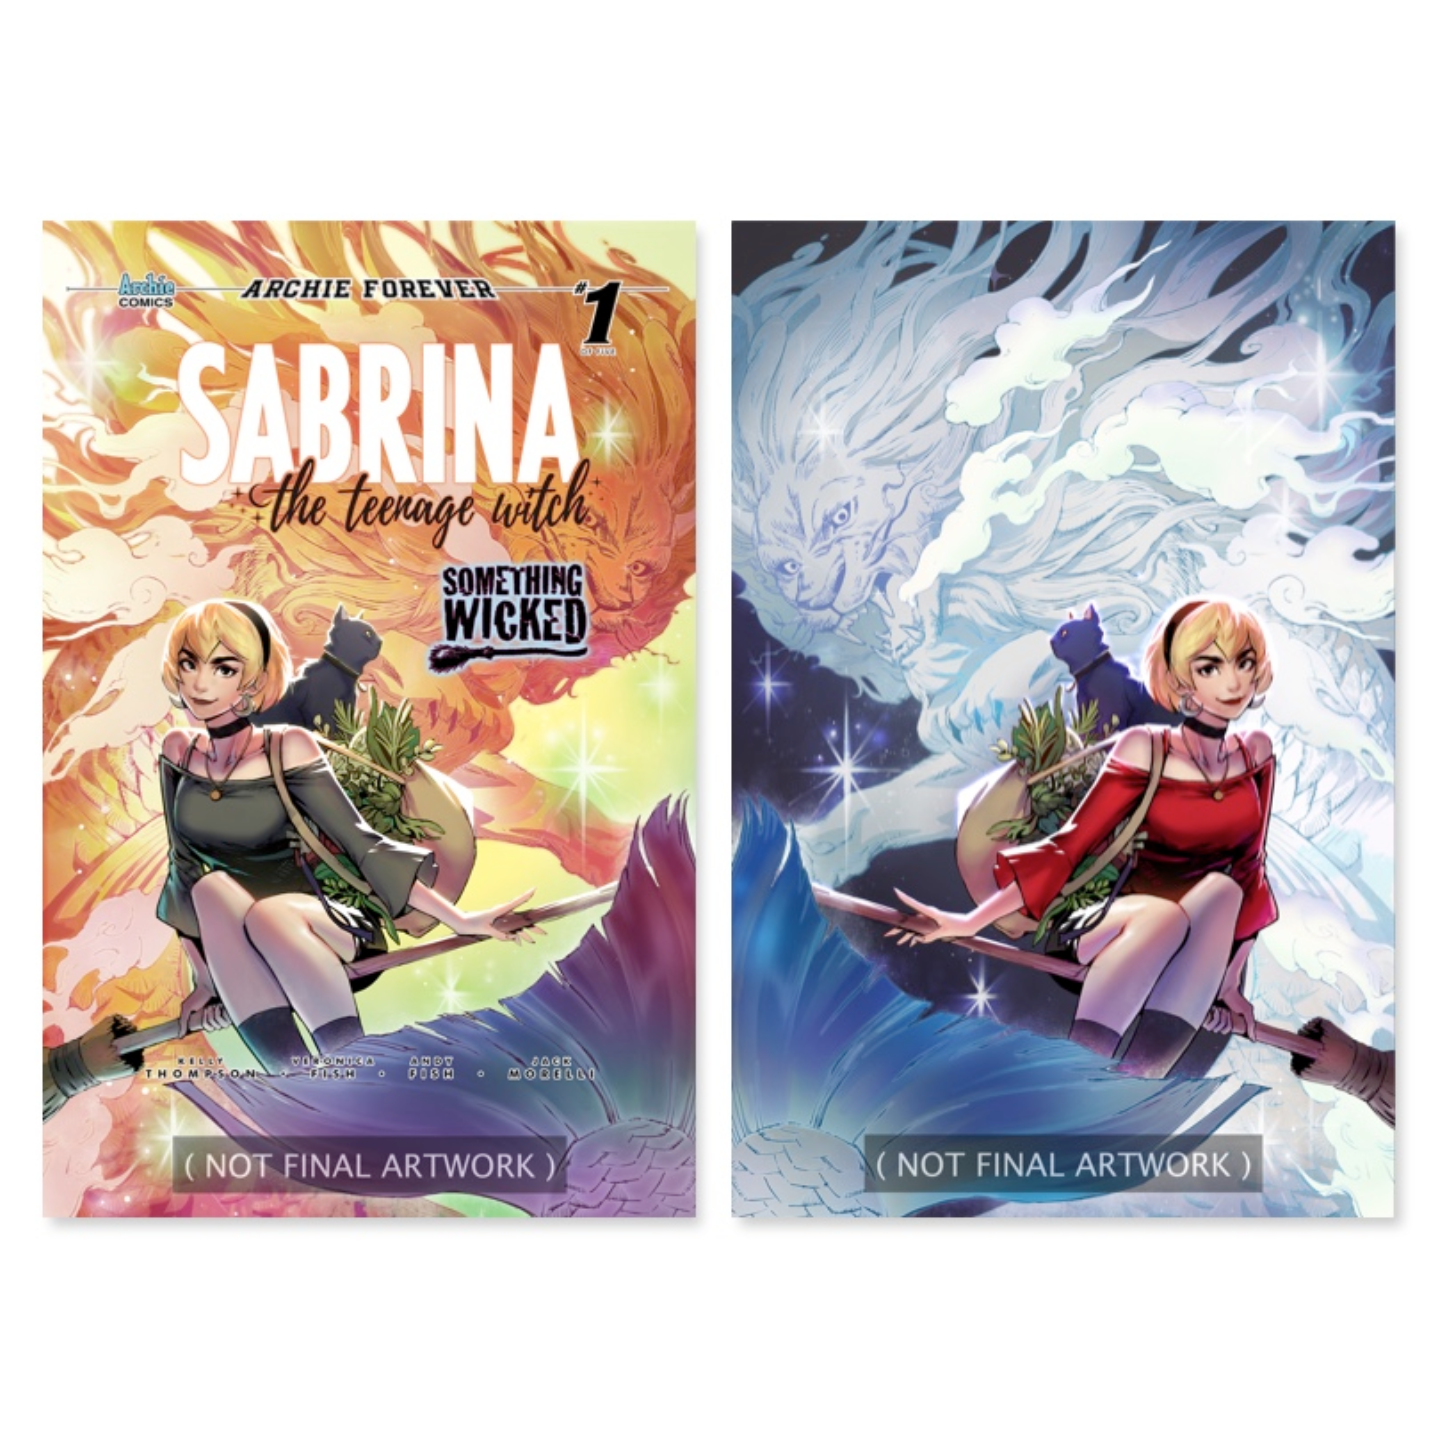 SABRINA SOMETHING WICKED 1 WONDERIFIC EXCLUSIVE TRICIA WEE COVER SET PREORDER